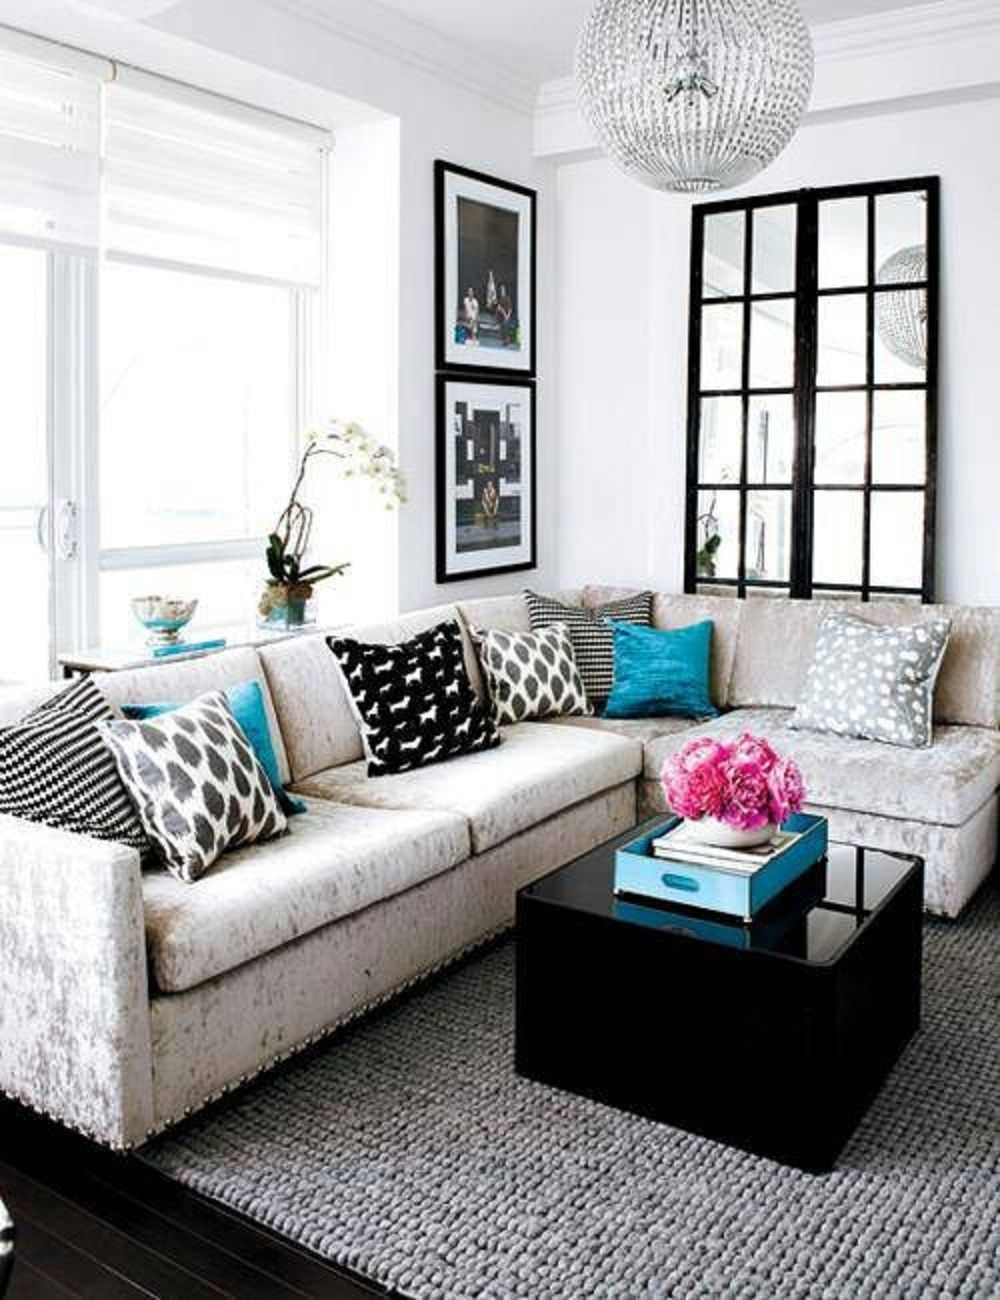 Sofa Sets For Small Living Rooms Room Chaise Lounge Covers Pin By Kat Inouye On Beautiful Diy Decor Design Wall